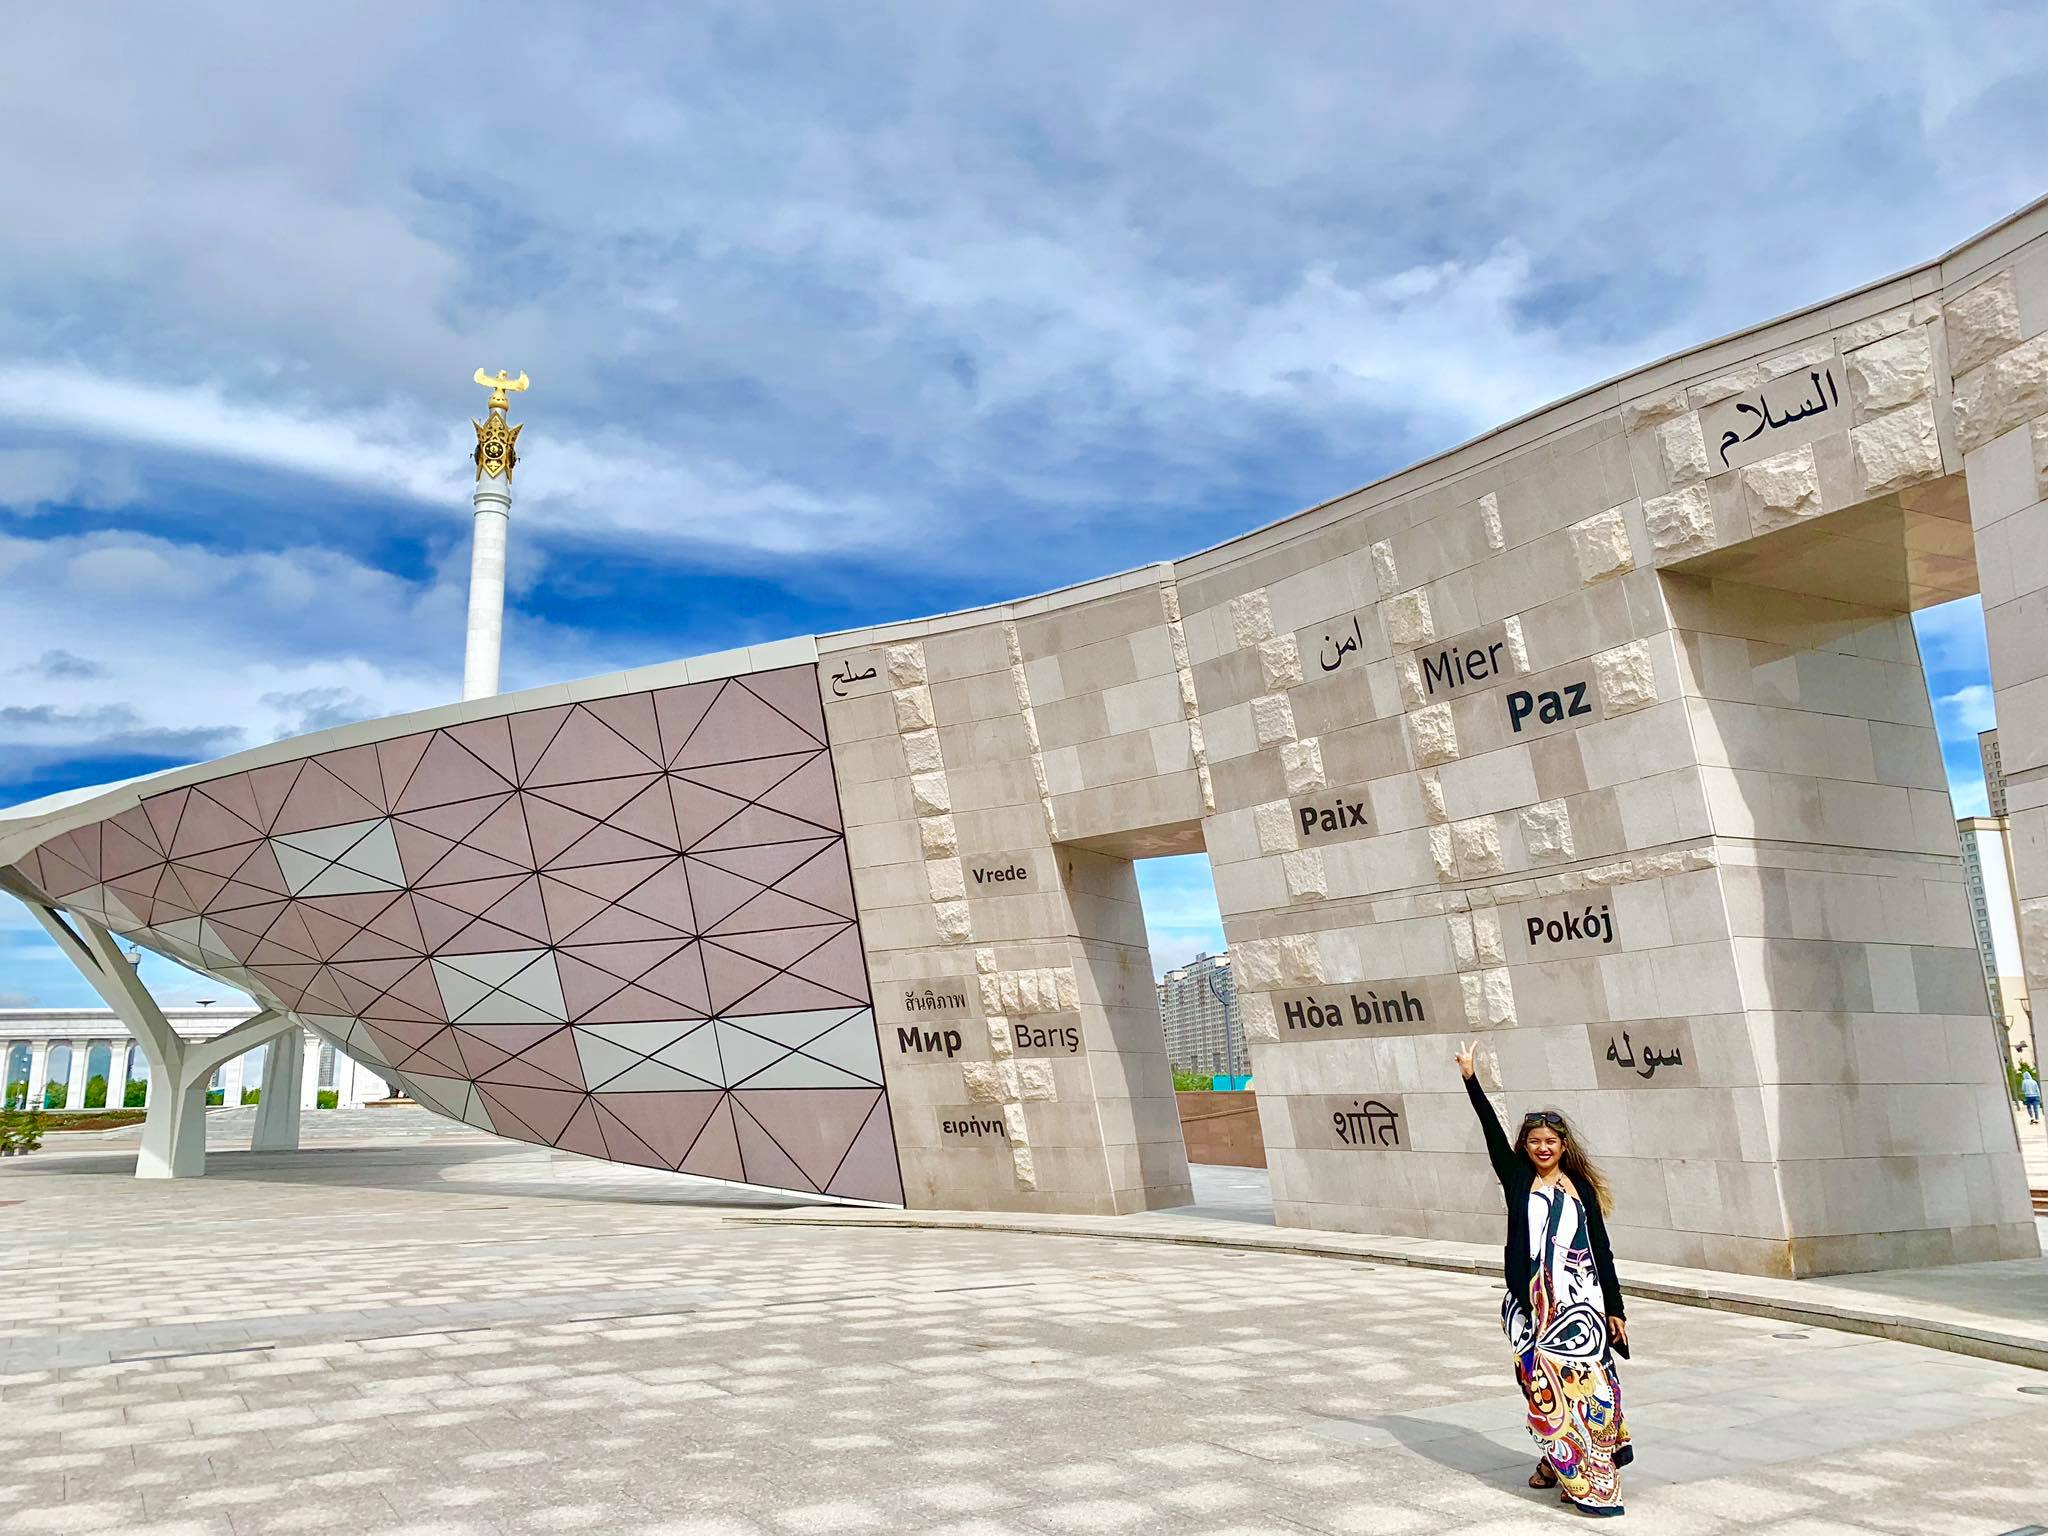 Kach Solo Travels in 2019 Nursultan  Astana - the City of the Future5.jpg